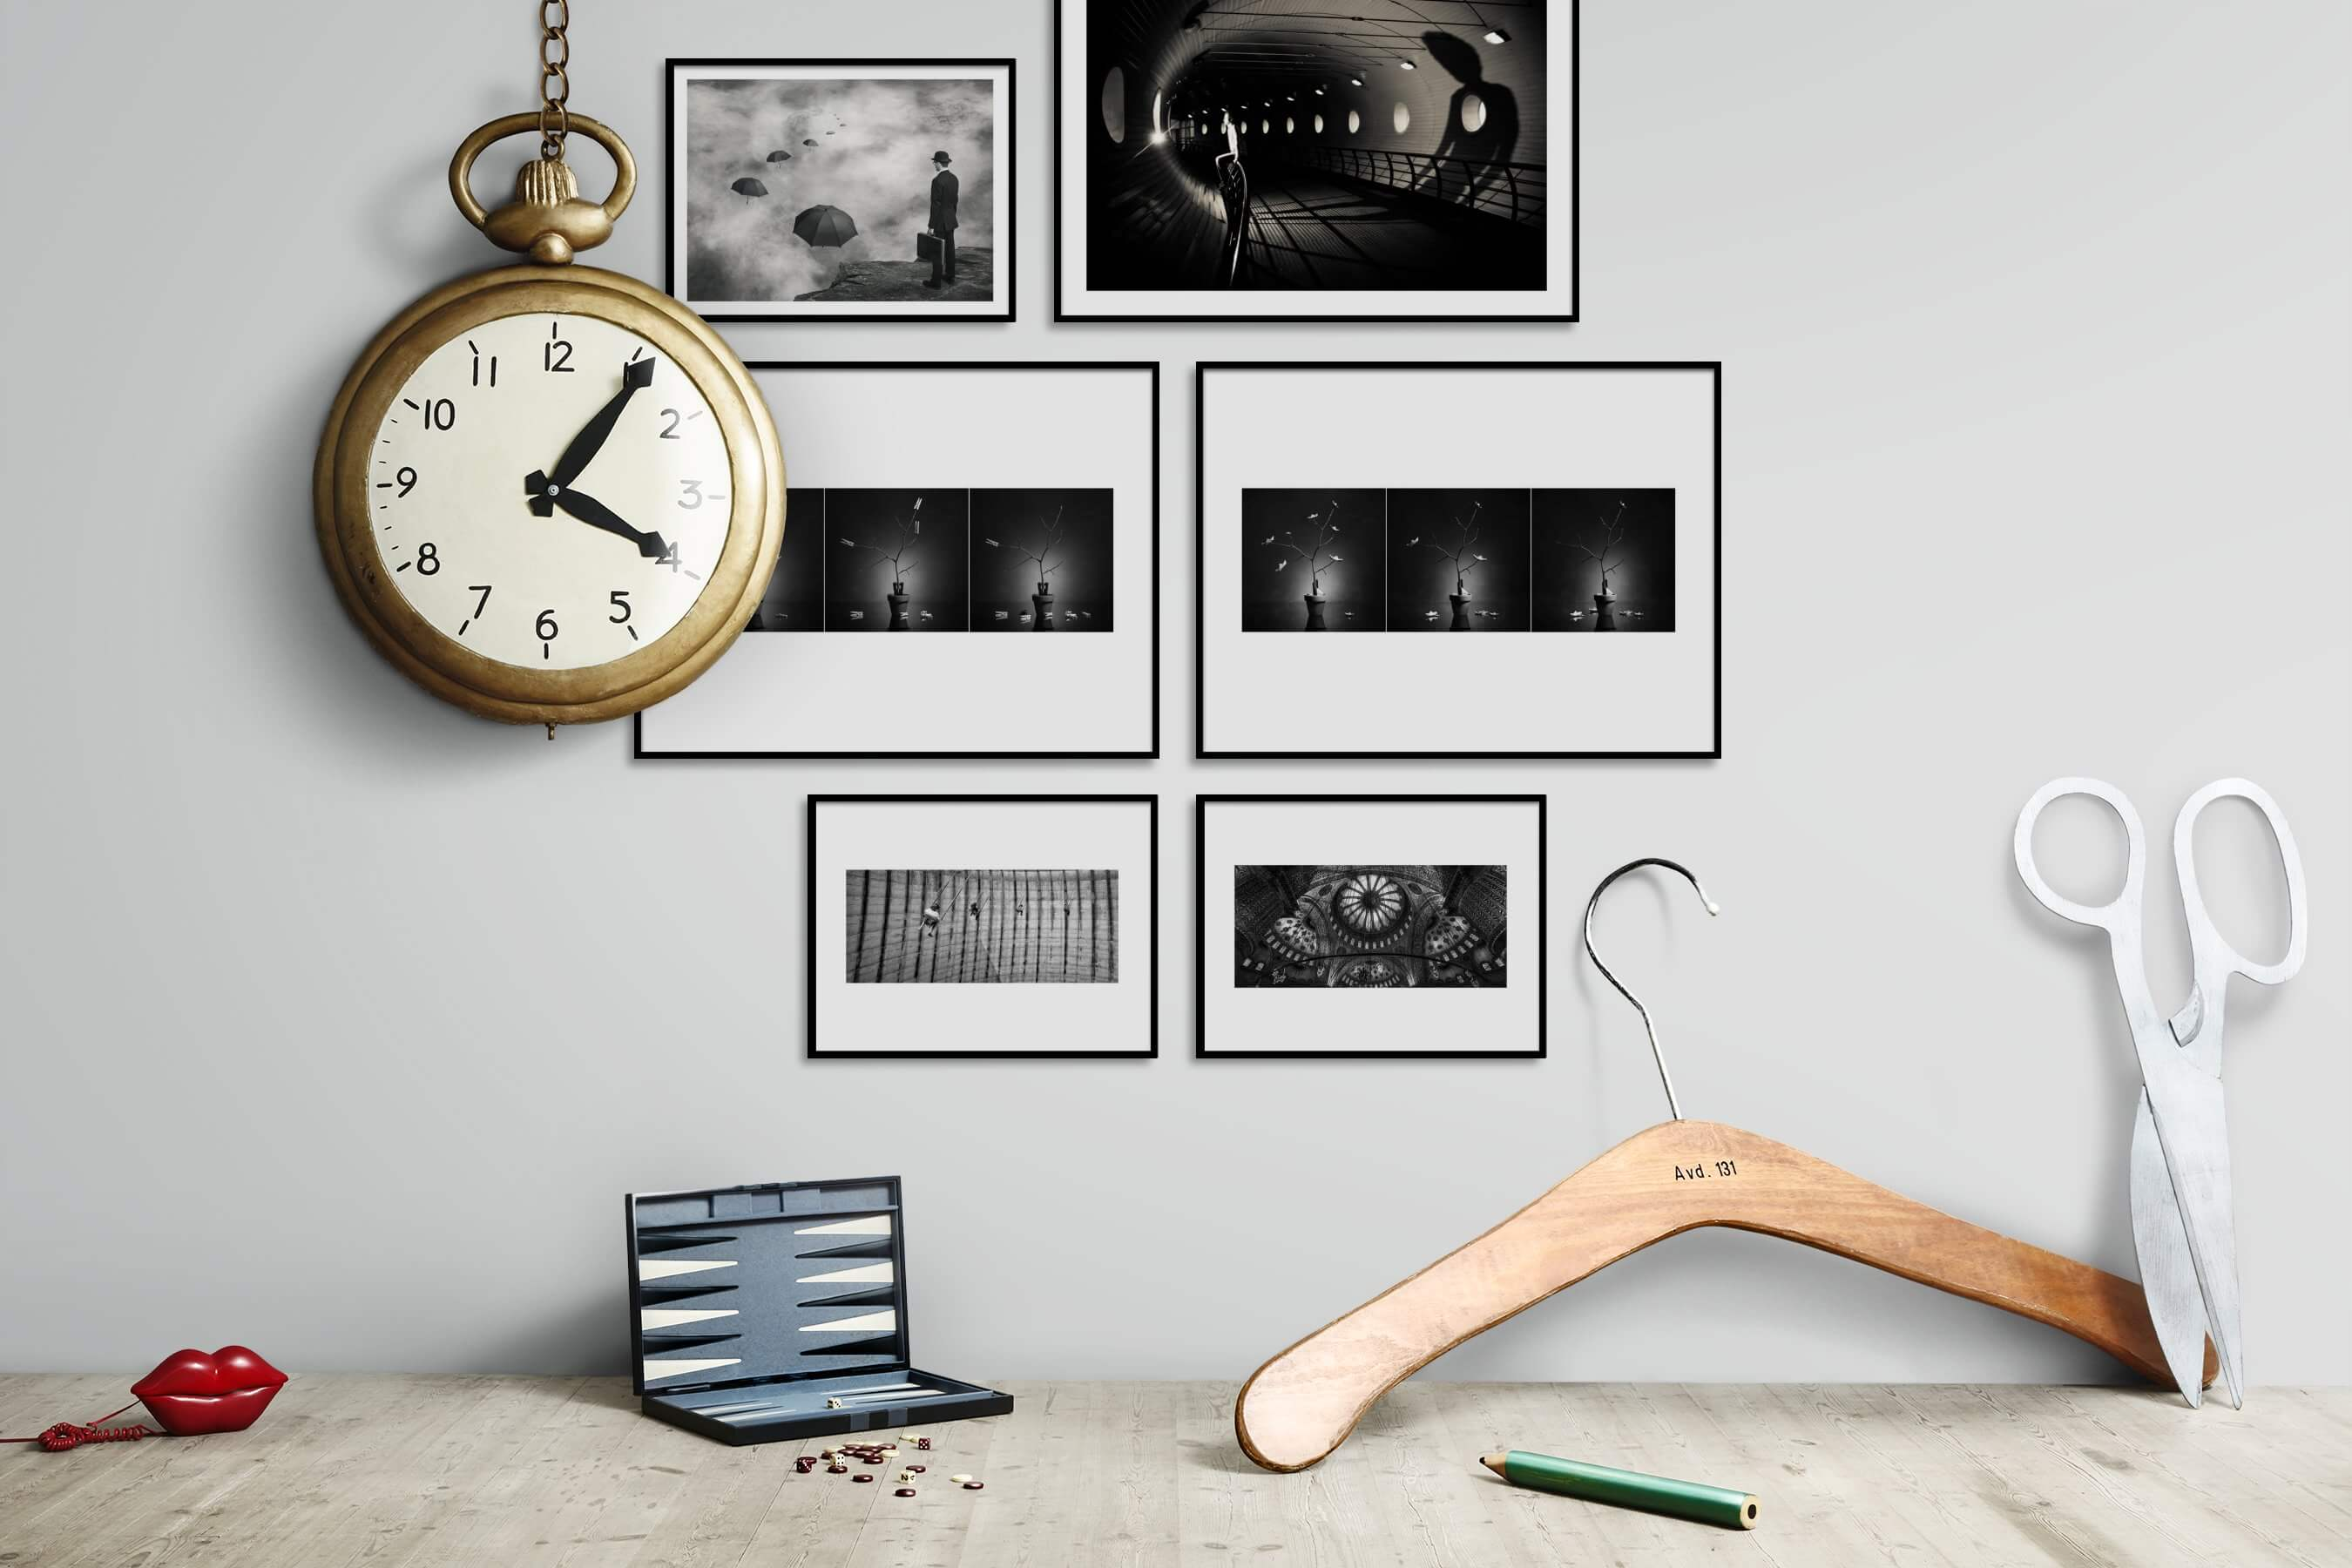 Gallery wall idea with six framed pictures arranged on a wall depicting Artsy, Black & White, For the Minimalist, Flowers & Plants, and For the Moderate